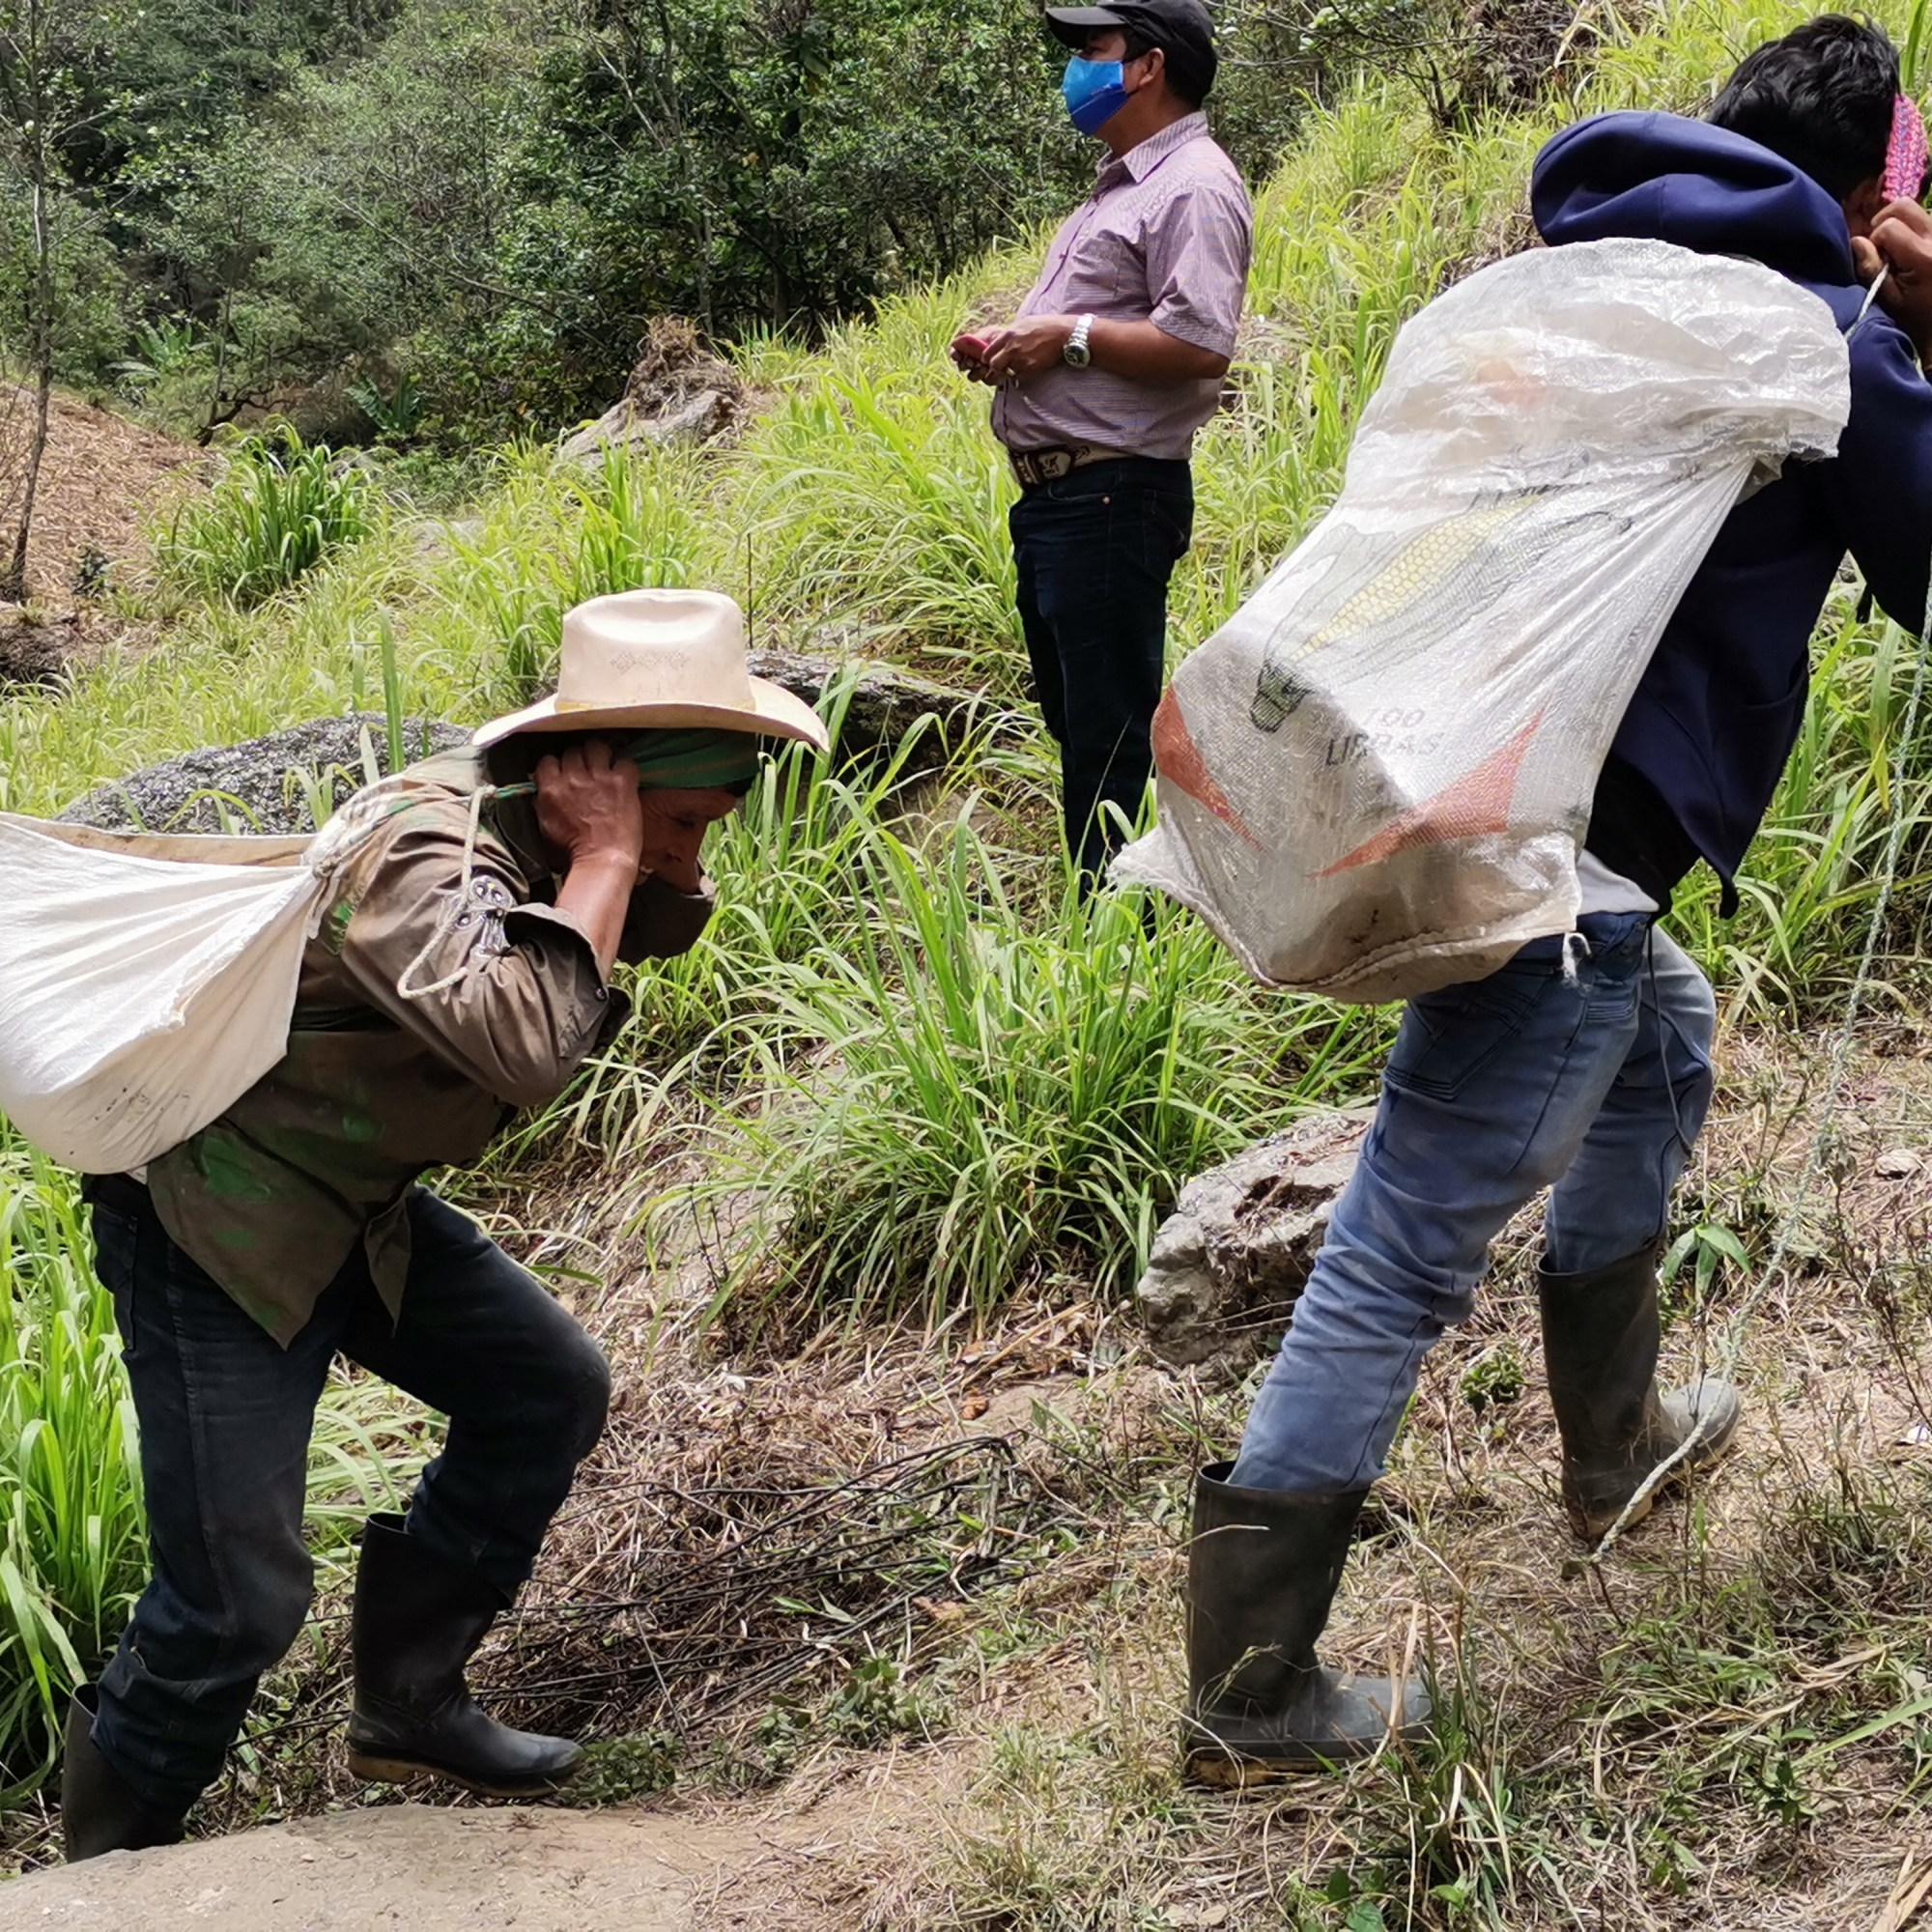 The crews carries supplies up the mountain.